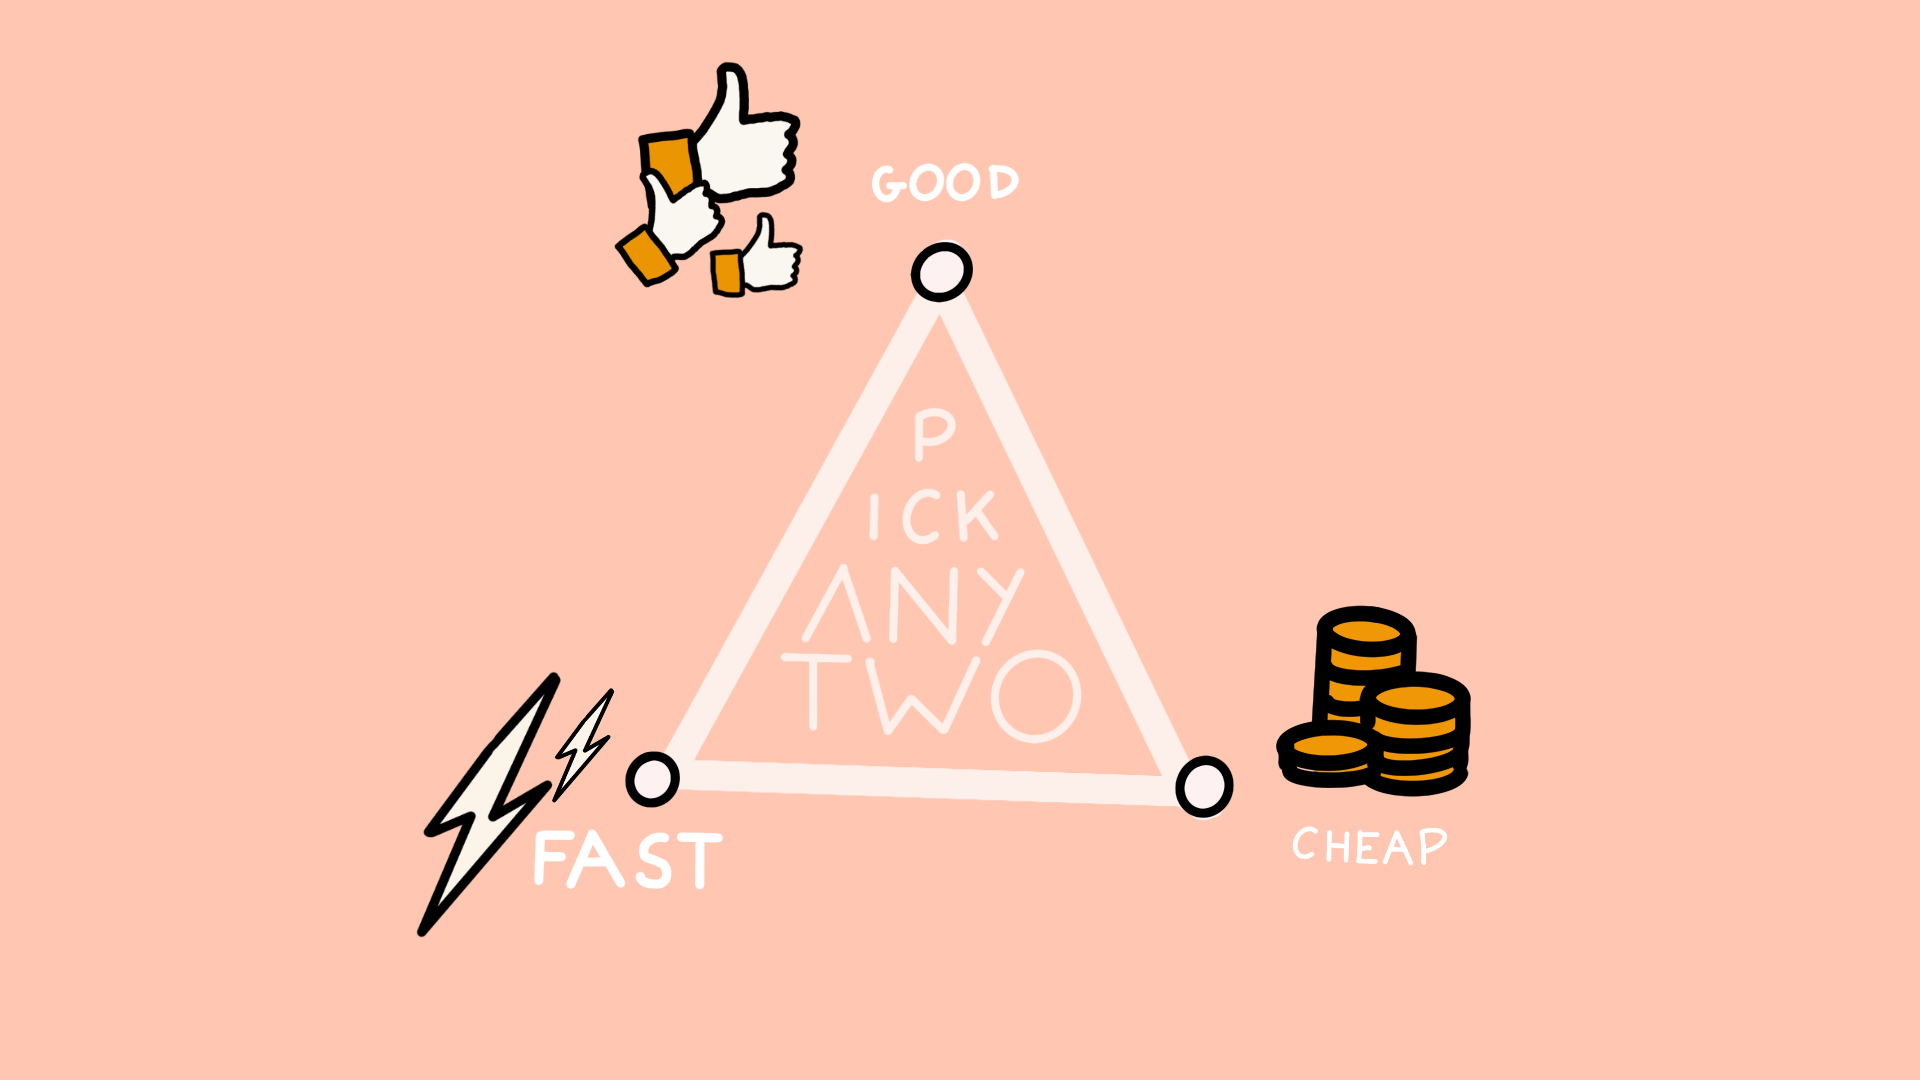 Good, Fast, Cheap triangle – pick two